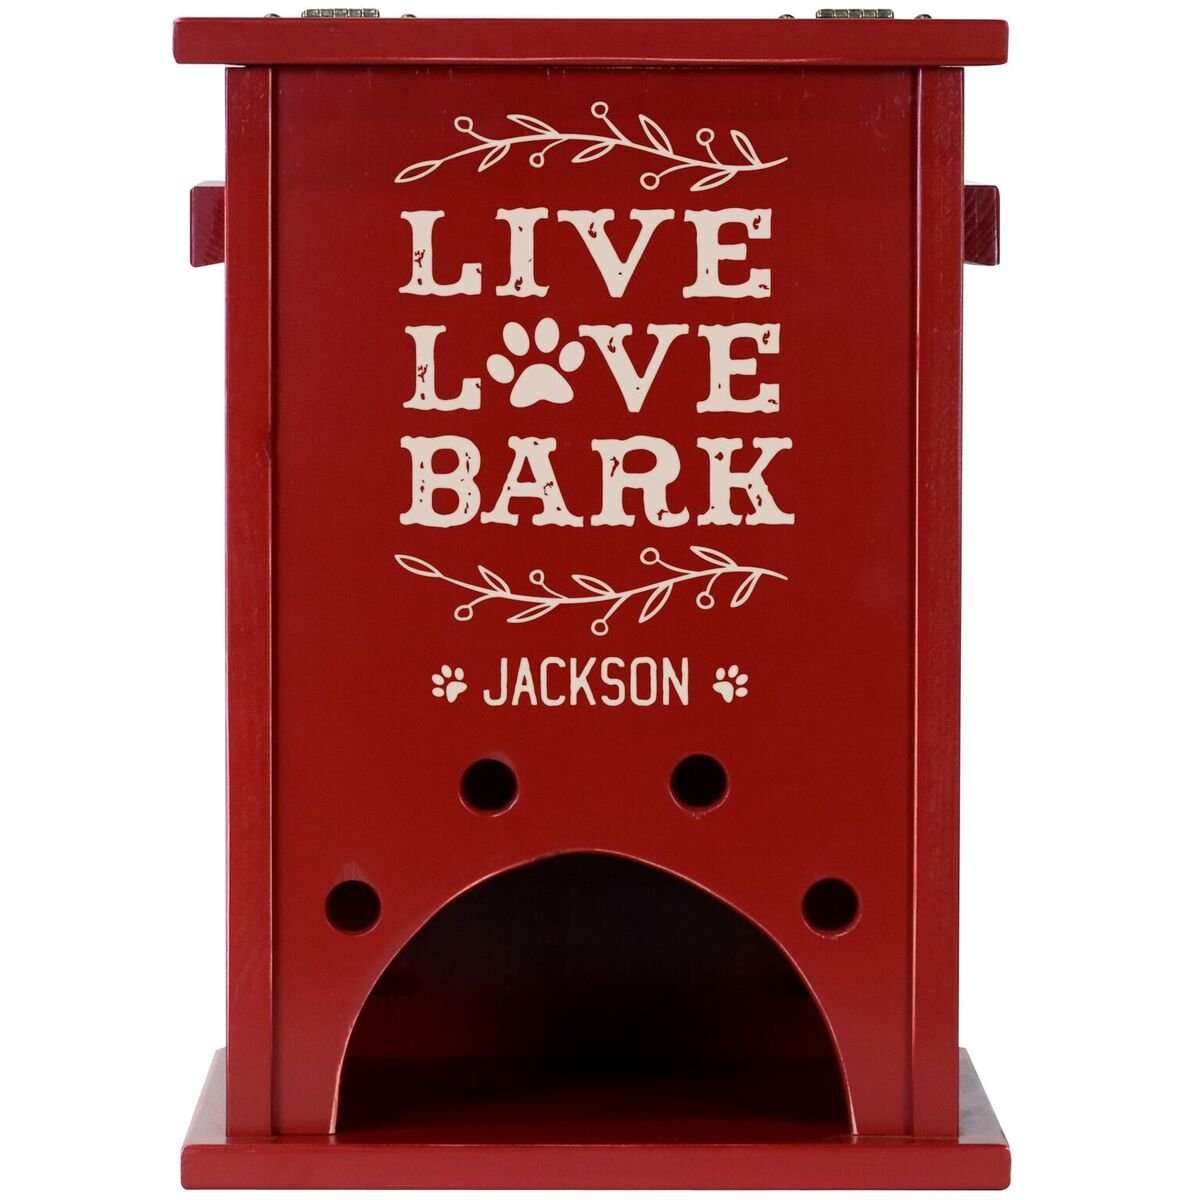 Personalized Custom Engraved Pine Pet Toy Box Storage Organizer, Birthday gift for Dogs, Daughter, Sons, Boys and Girls, Grandchildren, Made in USA By Rooms Organized (Red)